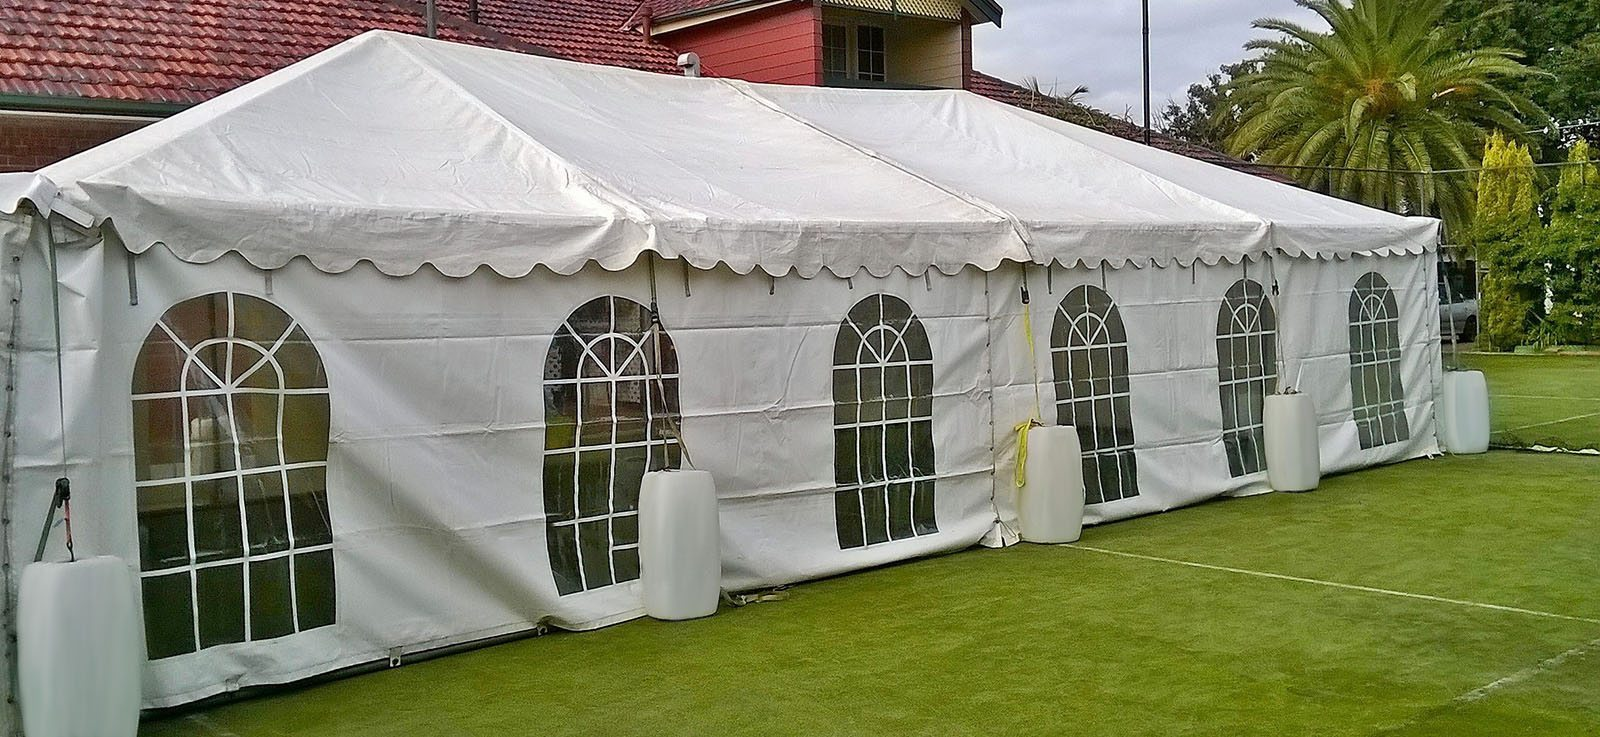 American Tent & Sidewall – Looking for tent hire in the USA, check out the products offered by this manufacturer of party tents and sidewalls.